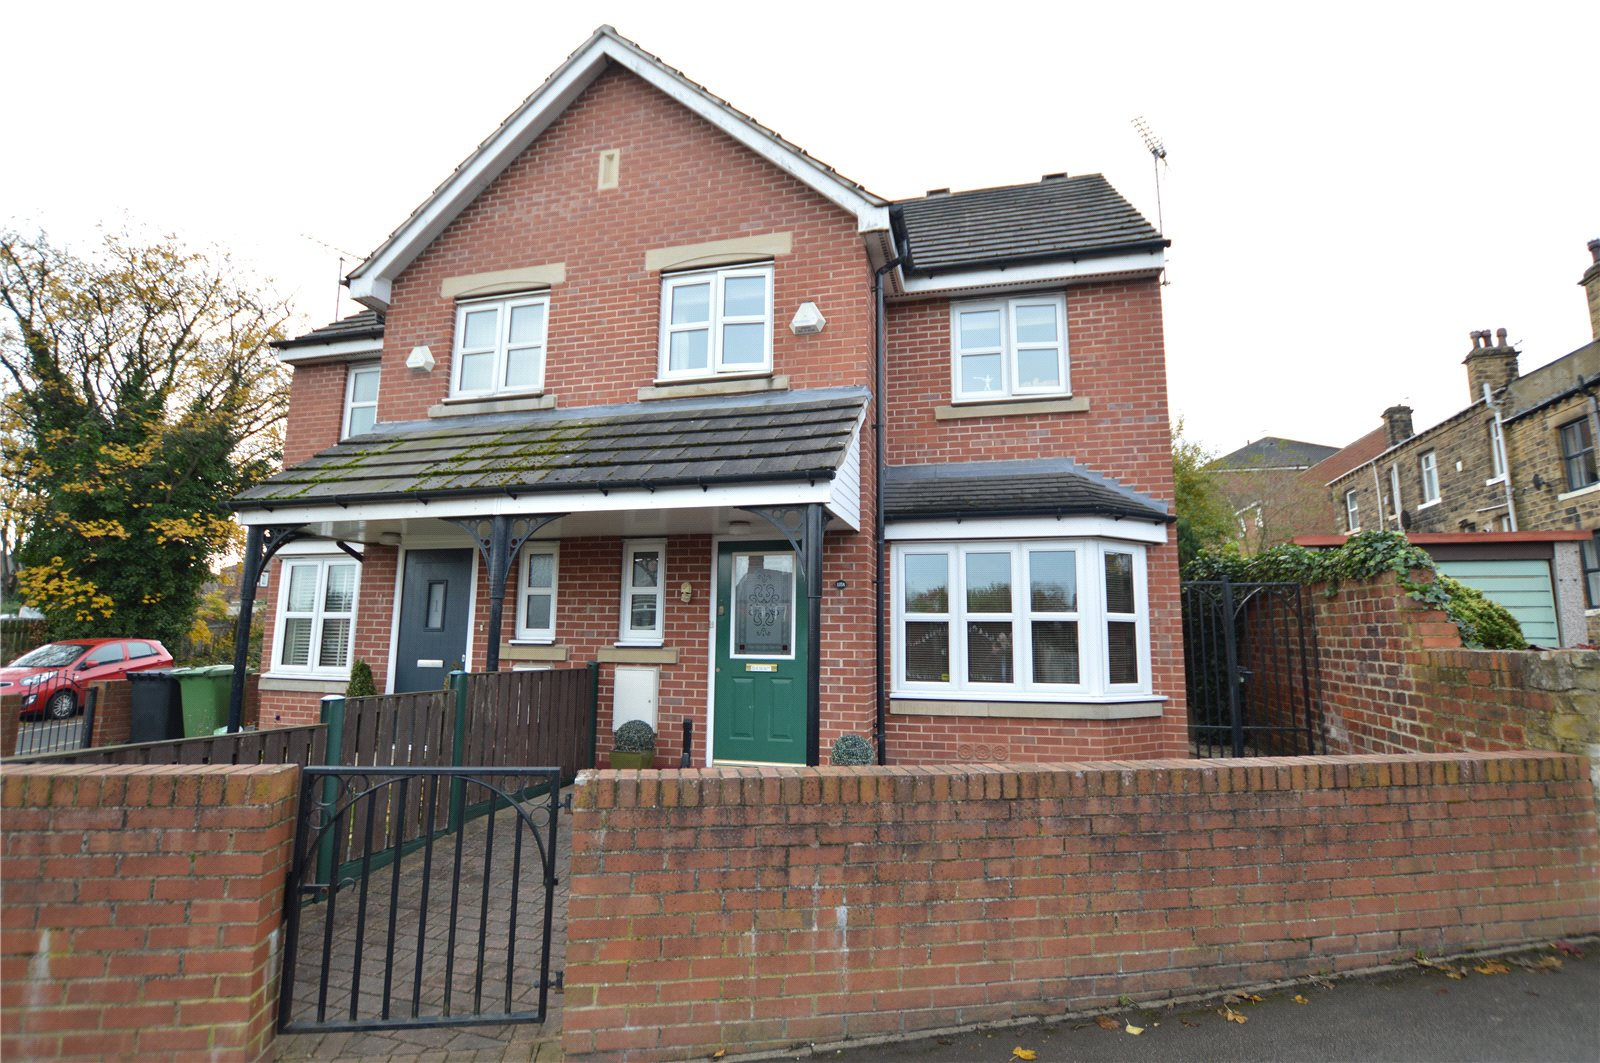 property for sale in Morley, exterior semi detached family home